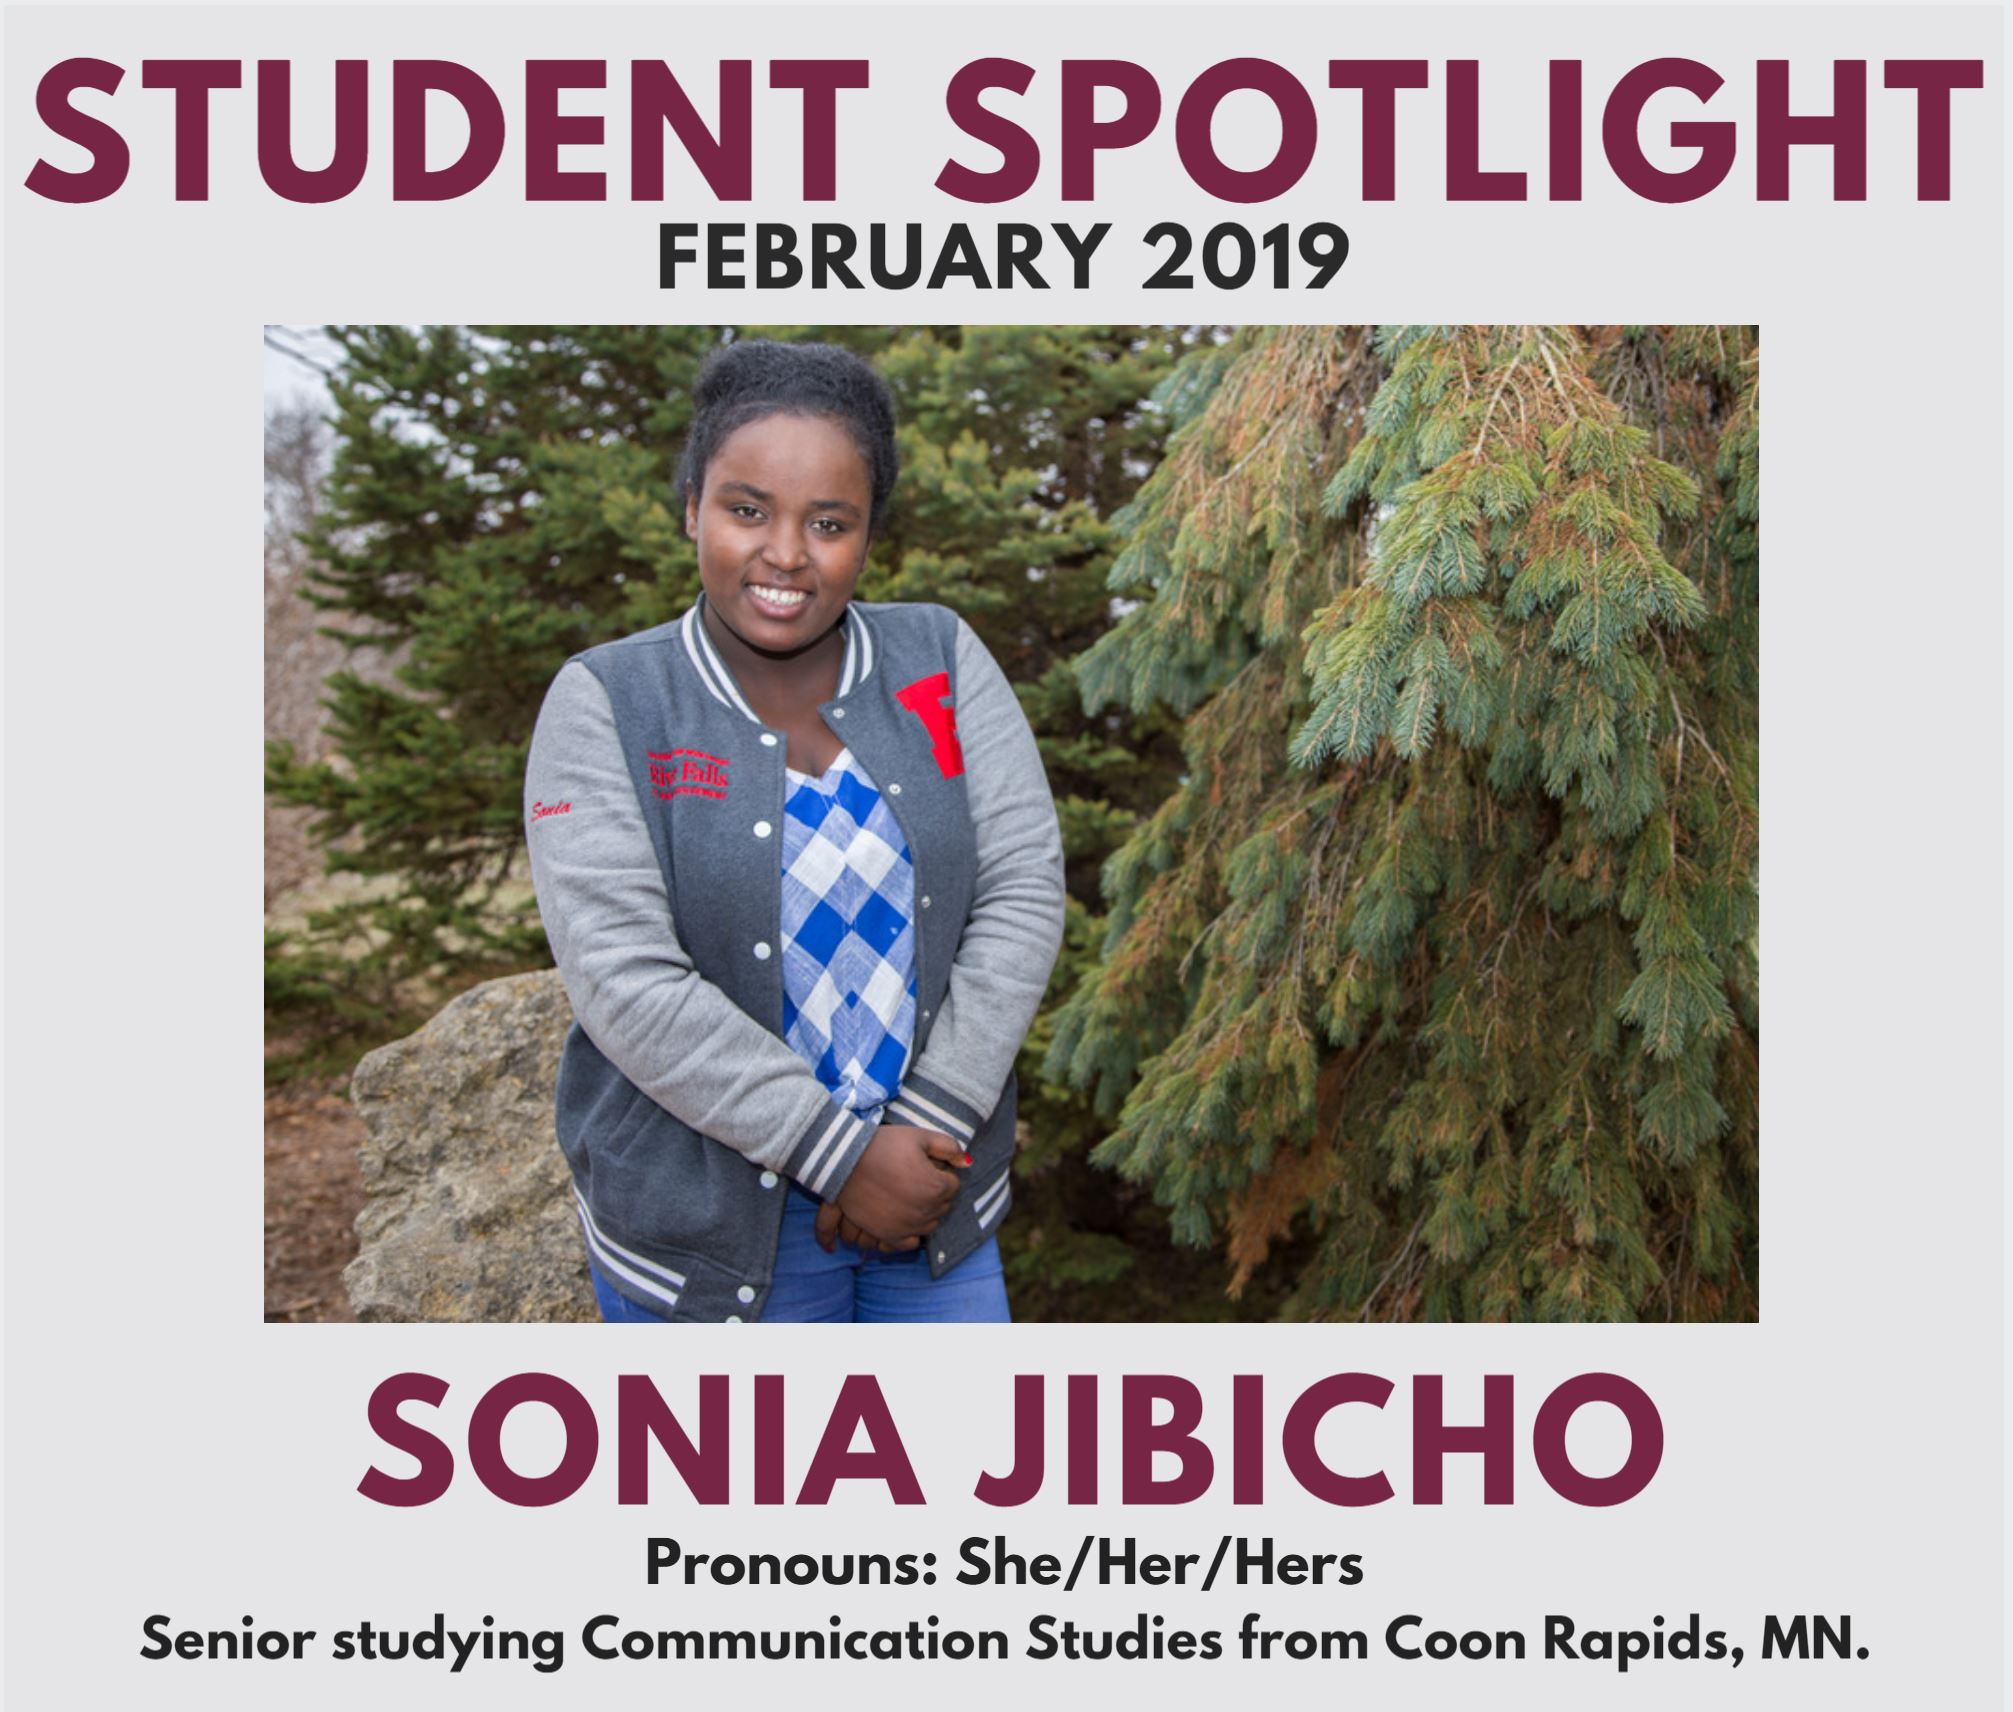 This is a photo of the February 2019 Student Spotlight, Sonia Jibicho. Sonia is a senior studying Communication Studies from Coon Rapids, MN. She uses She/Her/Hers pronouns. Sonia is outside wearing her Student Involvement River Falls jacket.